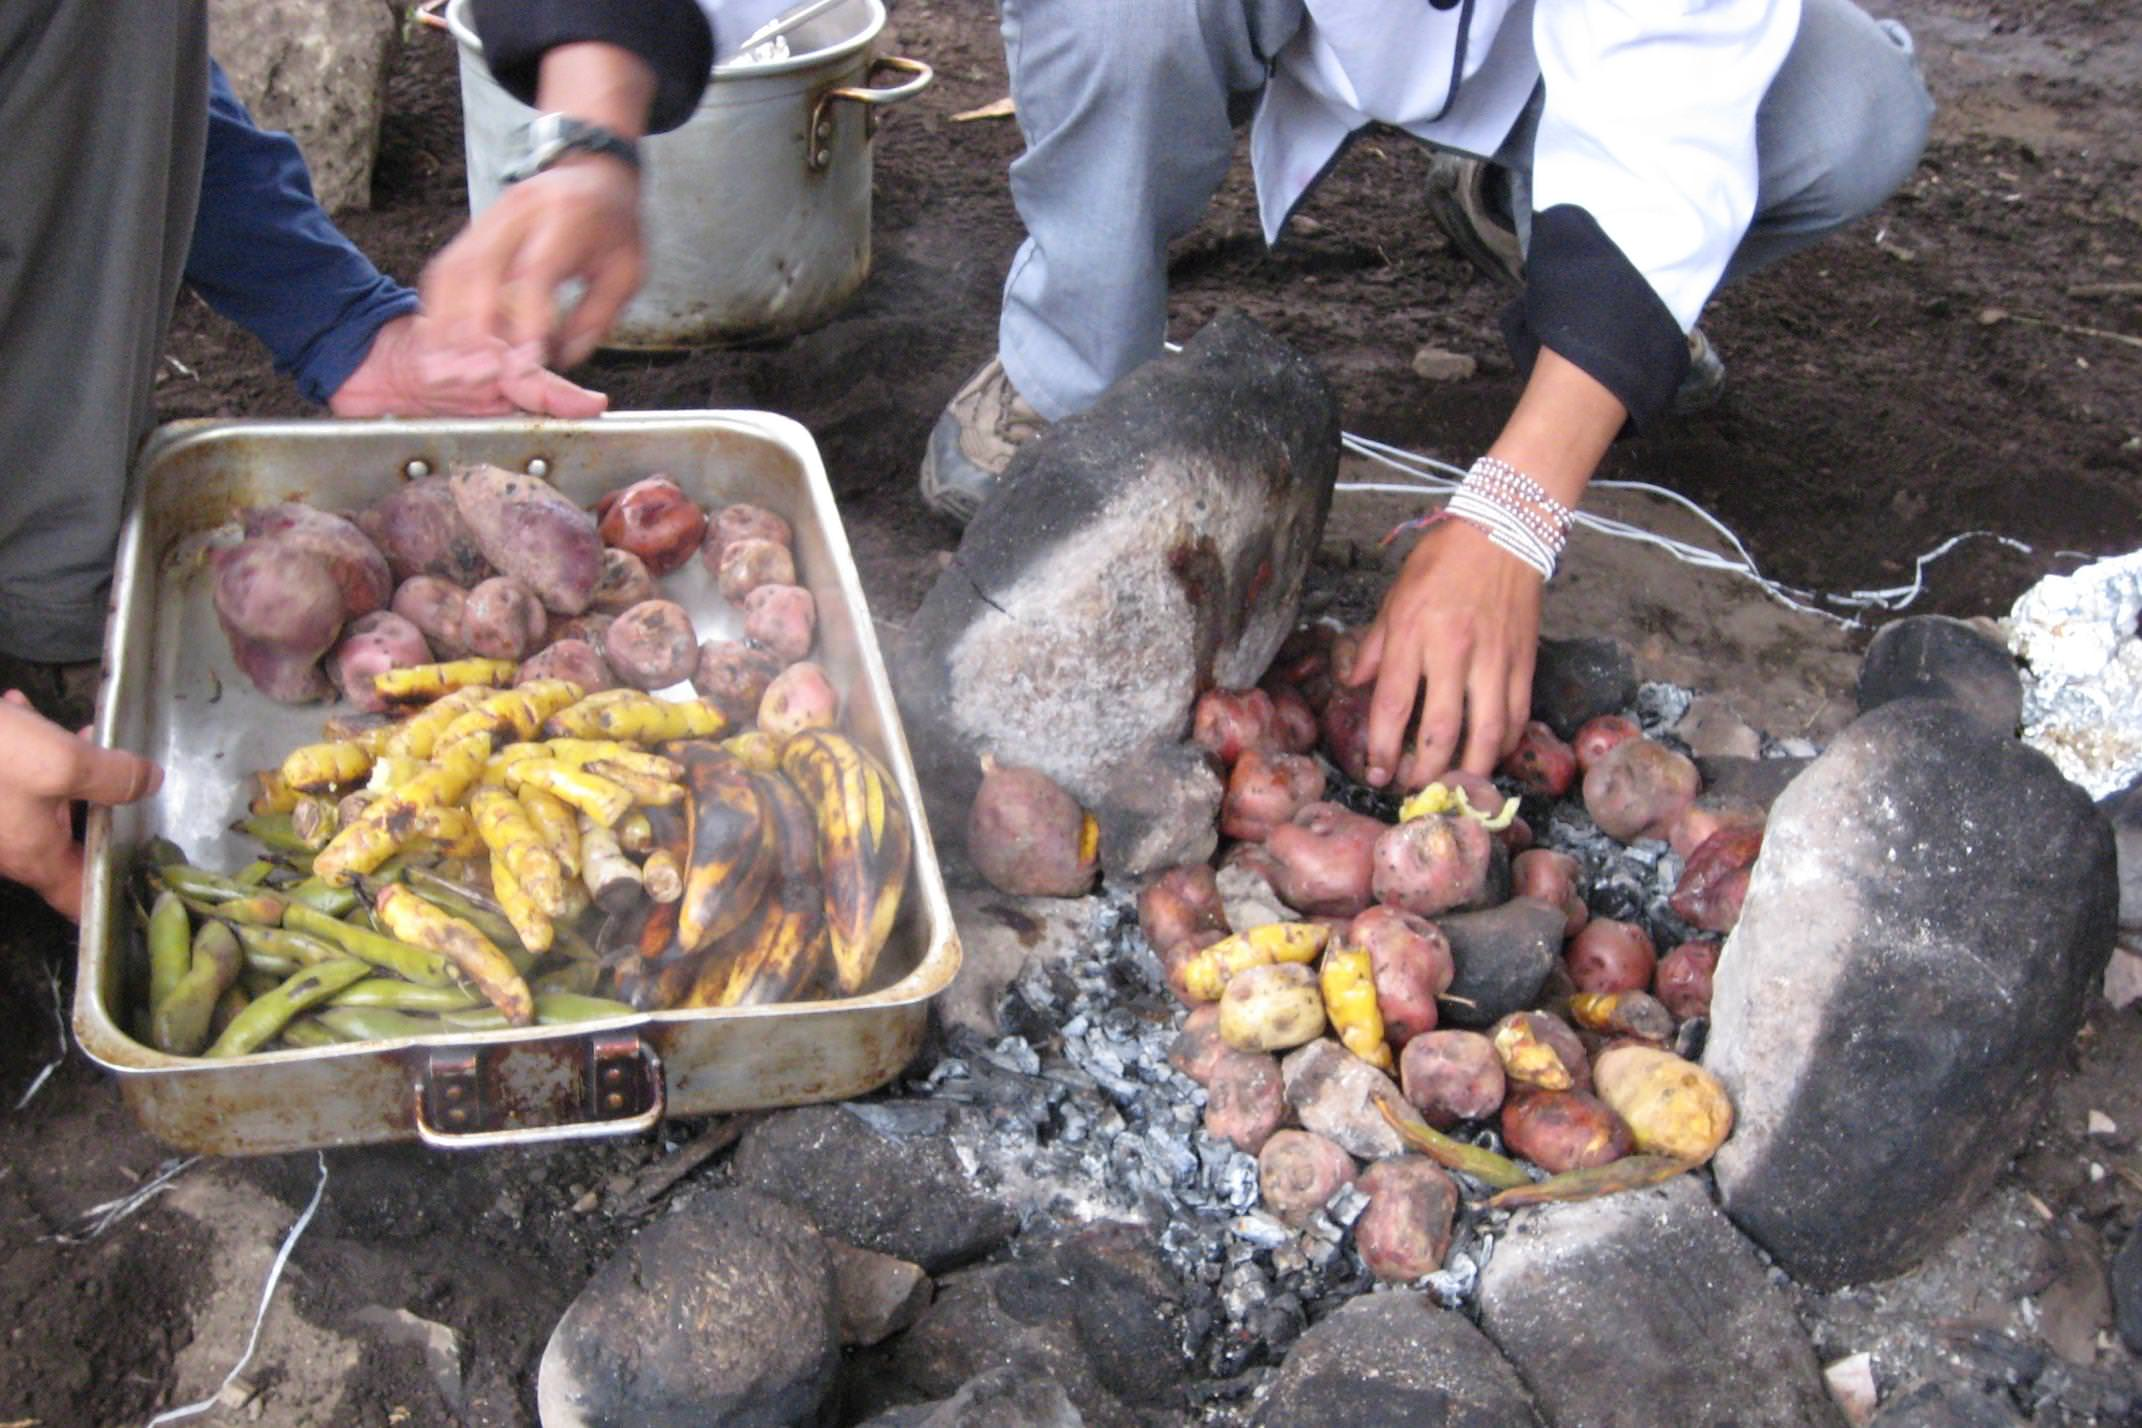 Peru andes chef cooking pachamama close up of hands